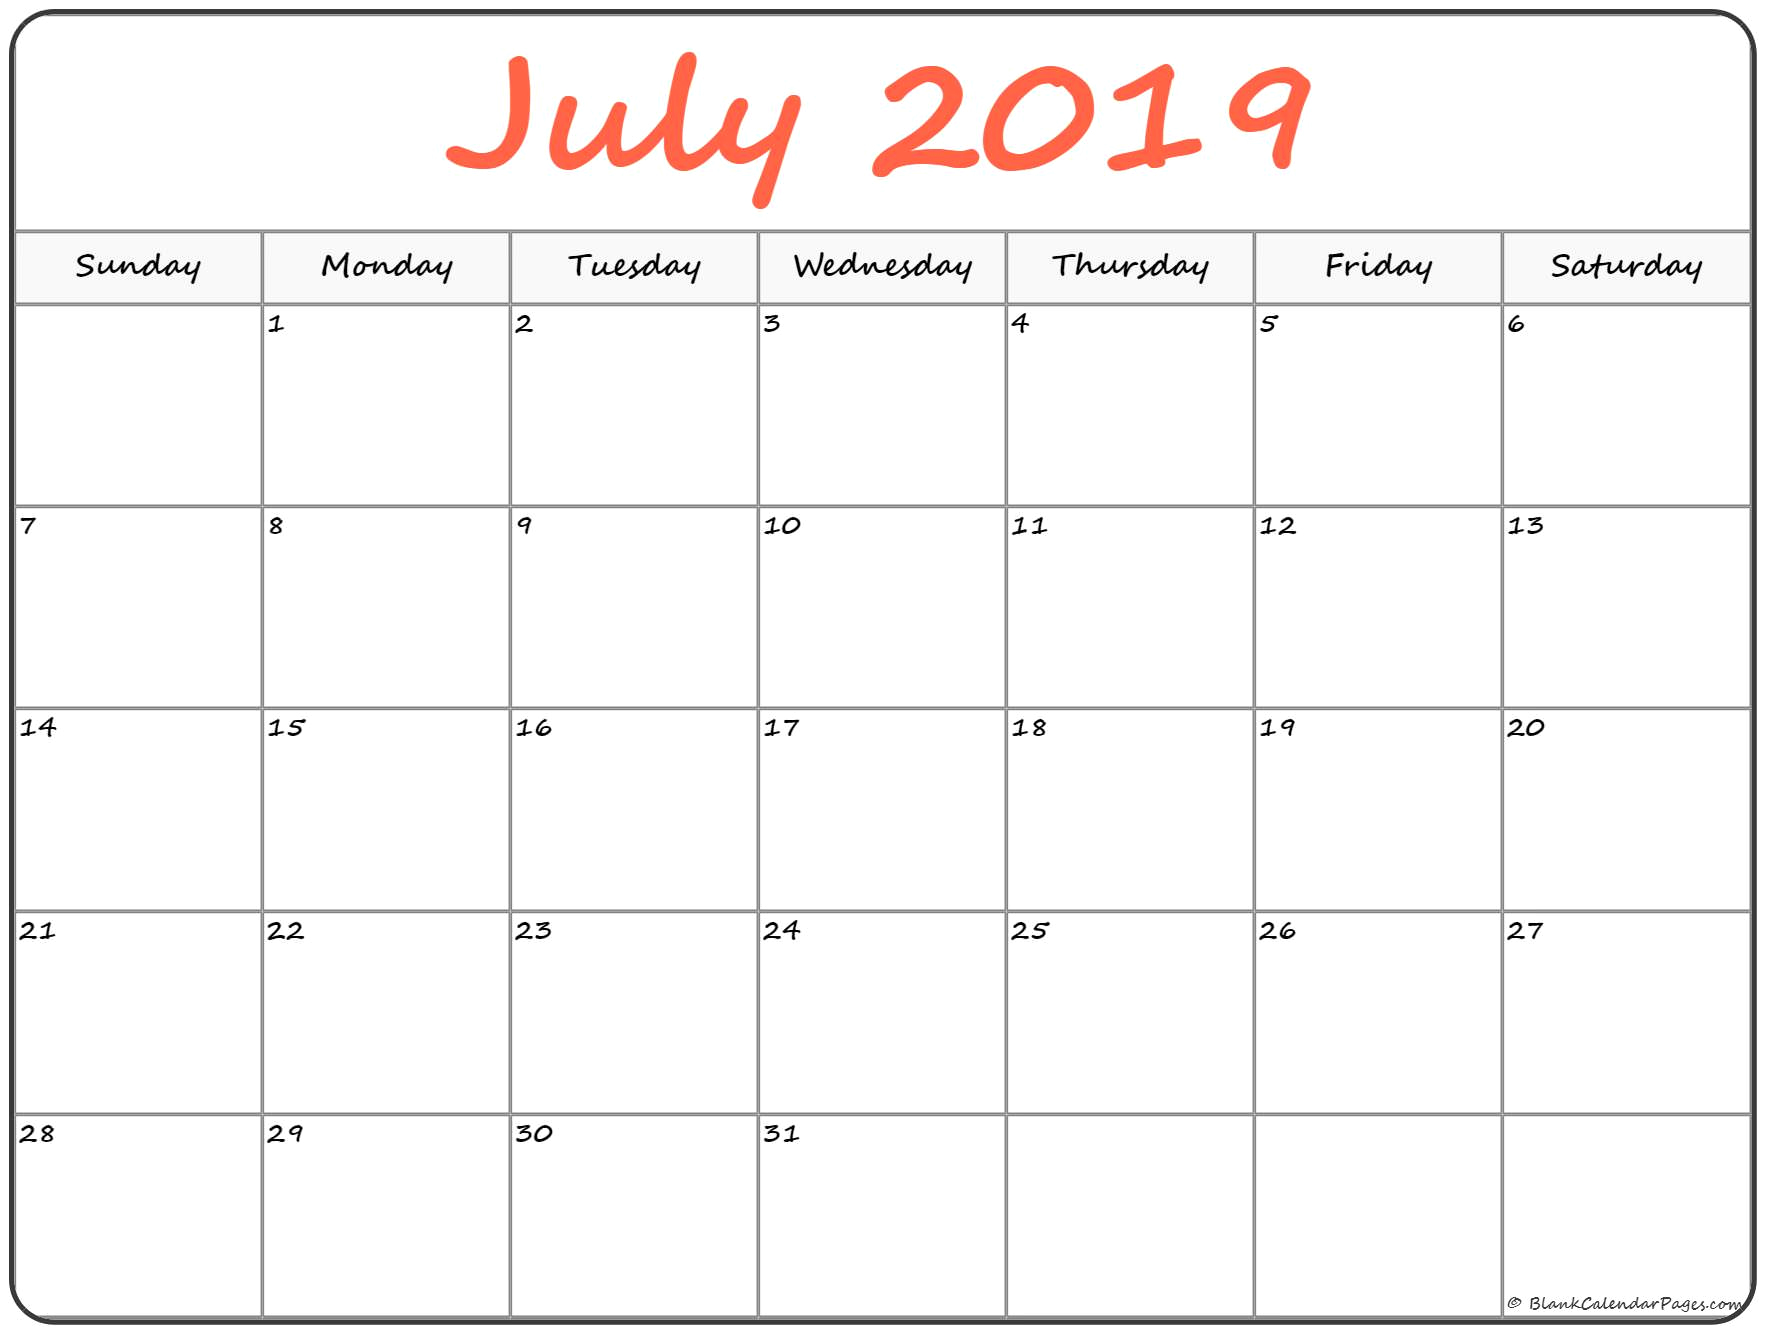 July Calendar.July Calendar 2019 Printable Blank Template With Editable Notes